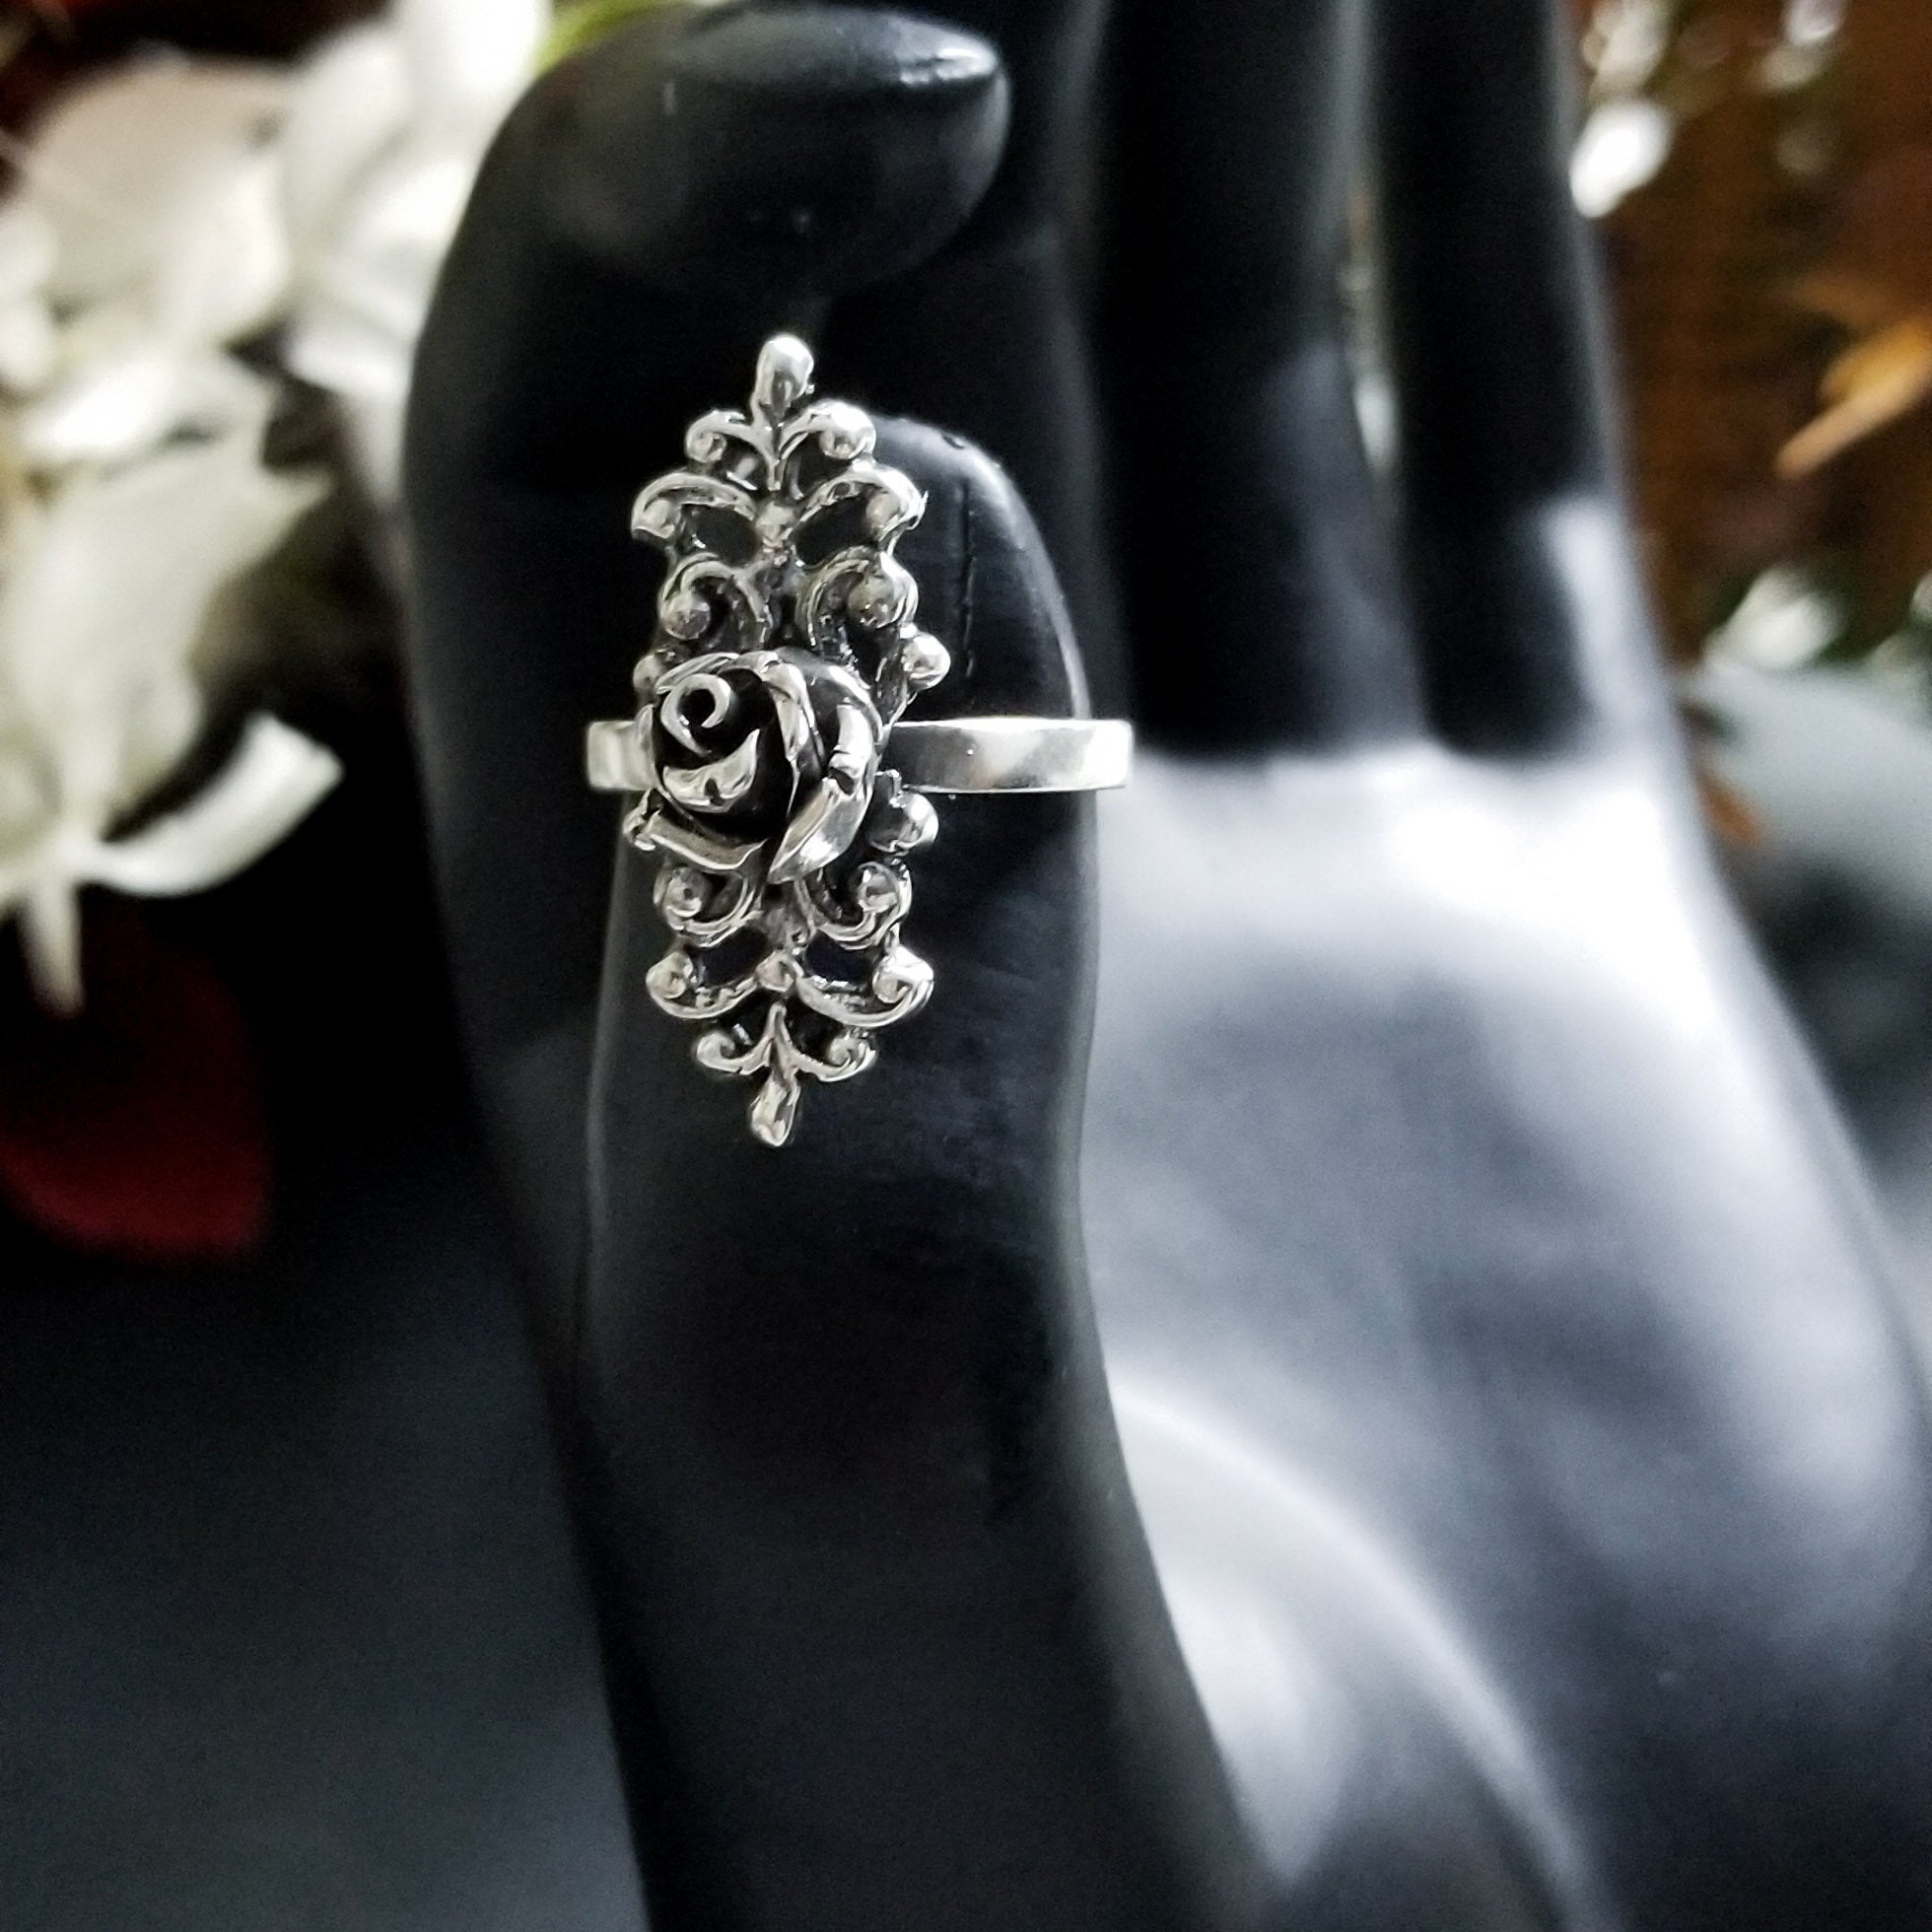 Silver Gothic Rose Ring with Lace - Inchoo Bijoux